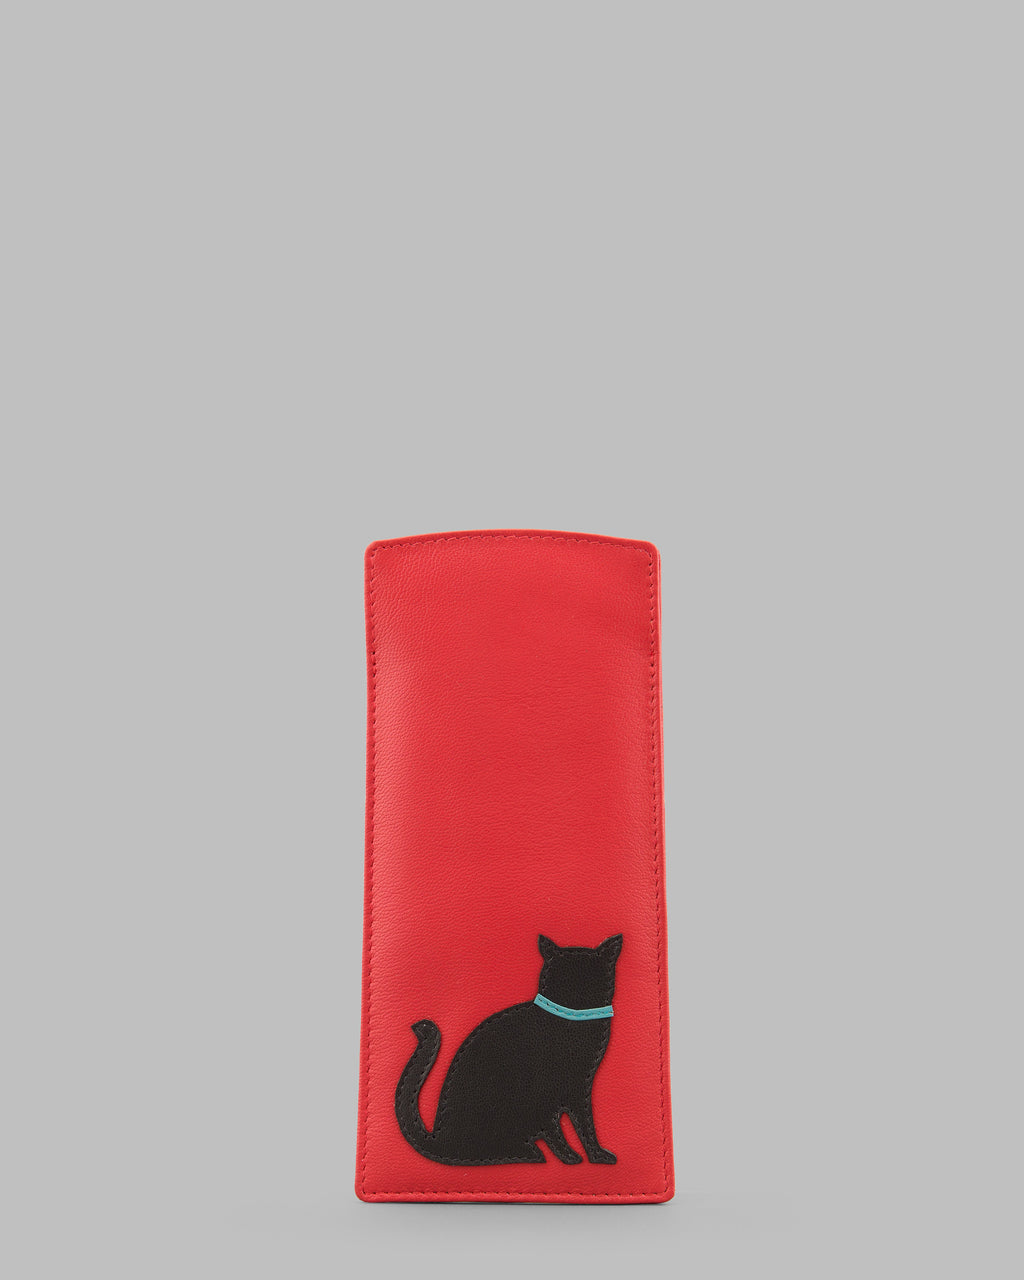 Y By Yoshi Feline Friends Leather Glasses Case